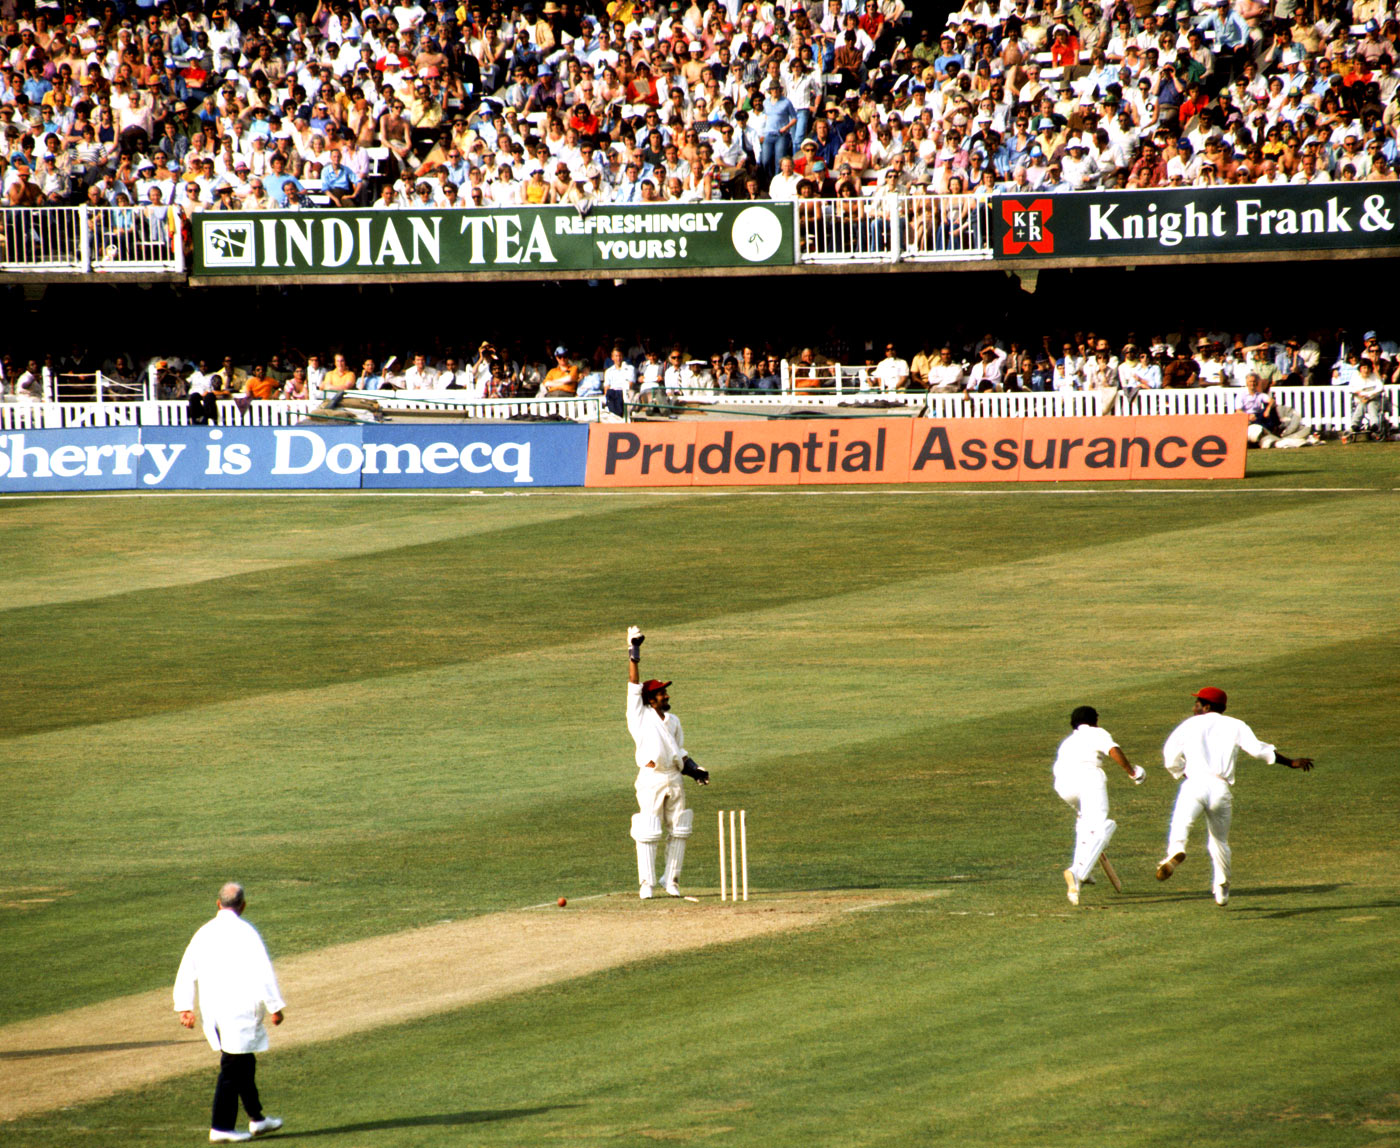 Viv Richards runs out Alan Turner in the '75 World Cup final. Would a modern equivalent of this photo give us the contextual details?